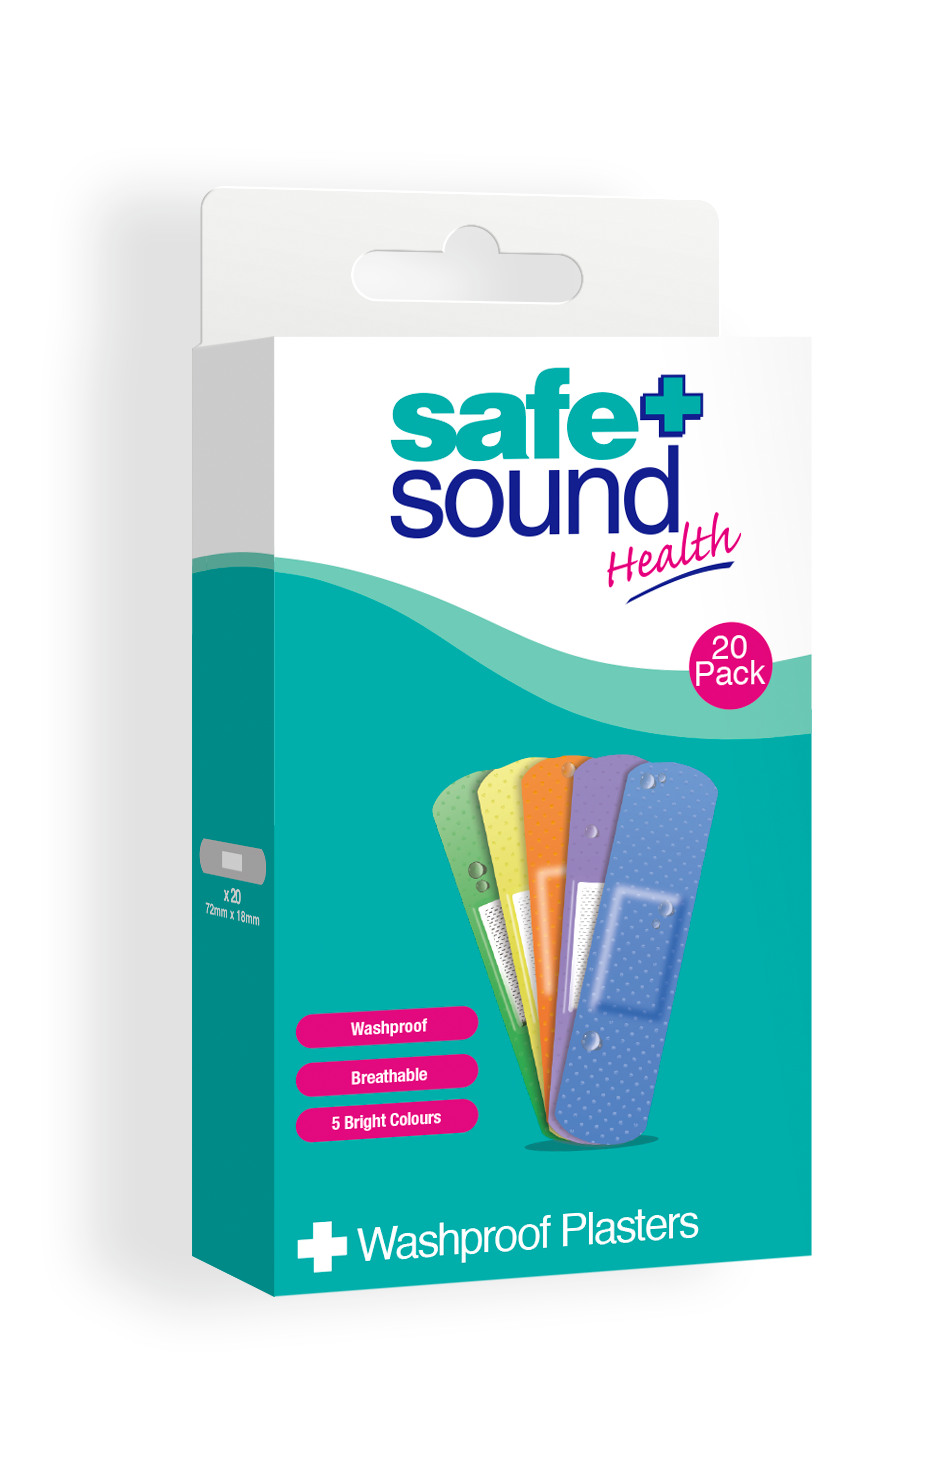 Safe and Sound Health's Multi-Coloured Glow Children's Plasters